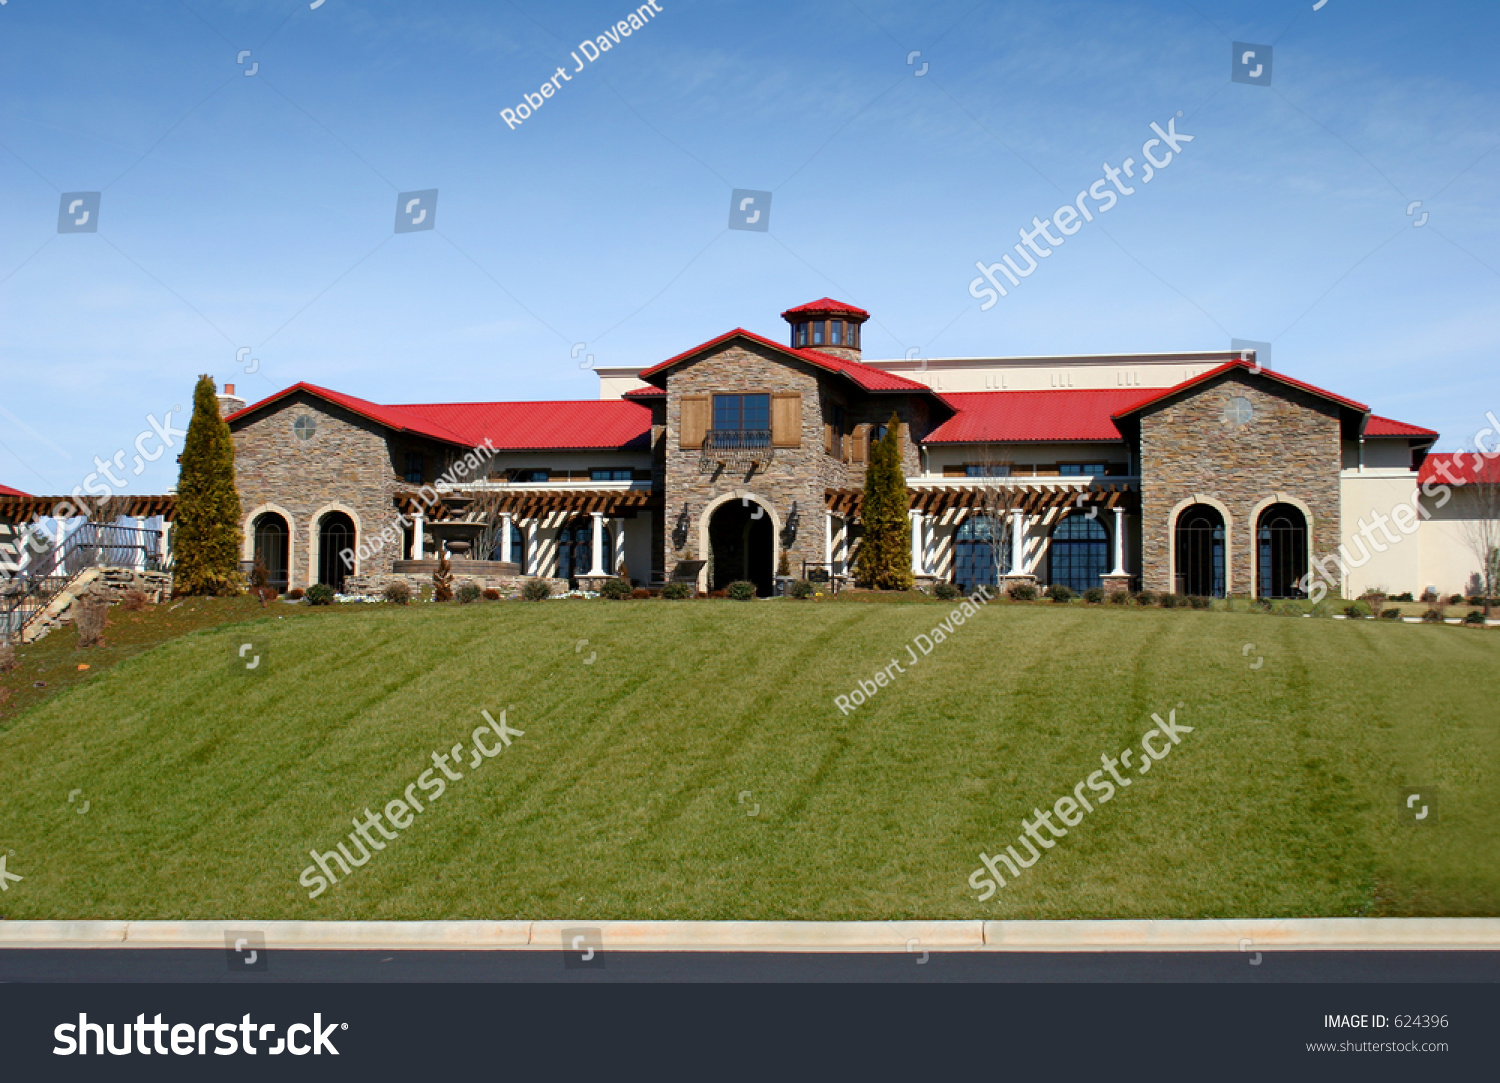 Large stone house with red tile roof under blue skies